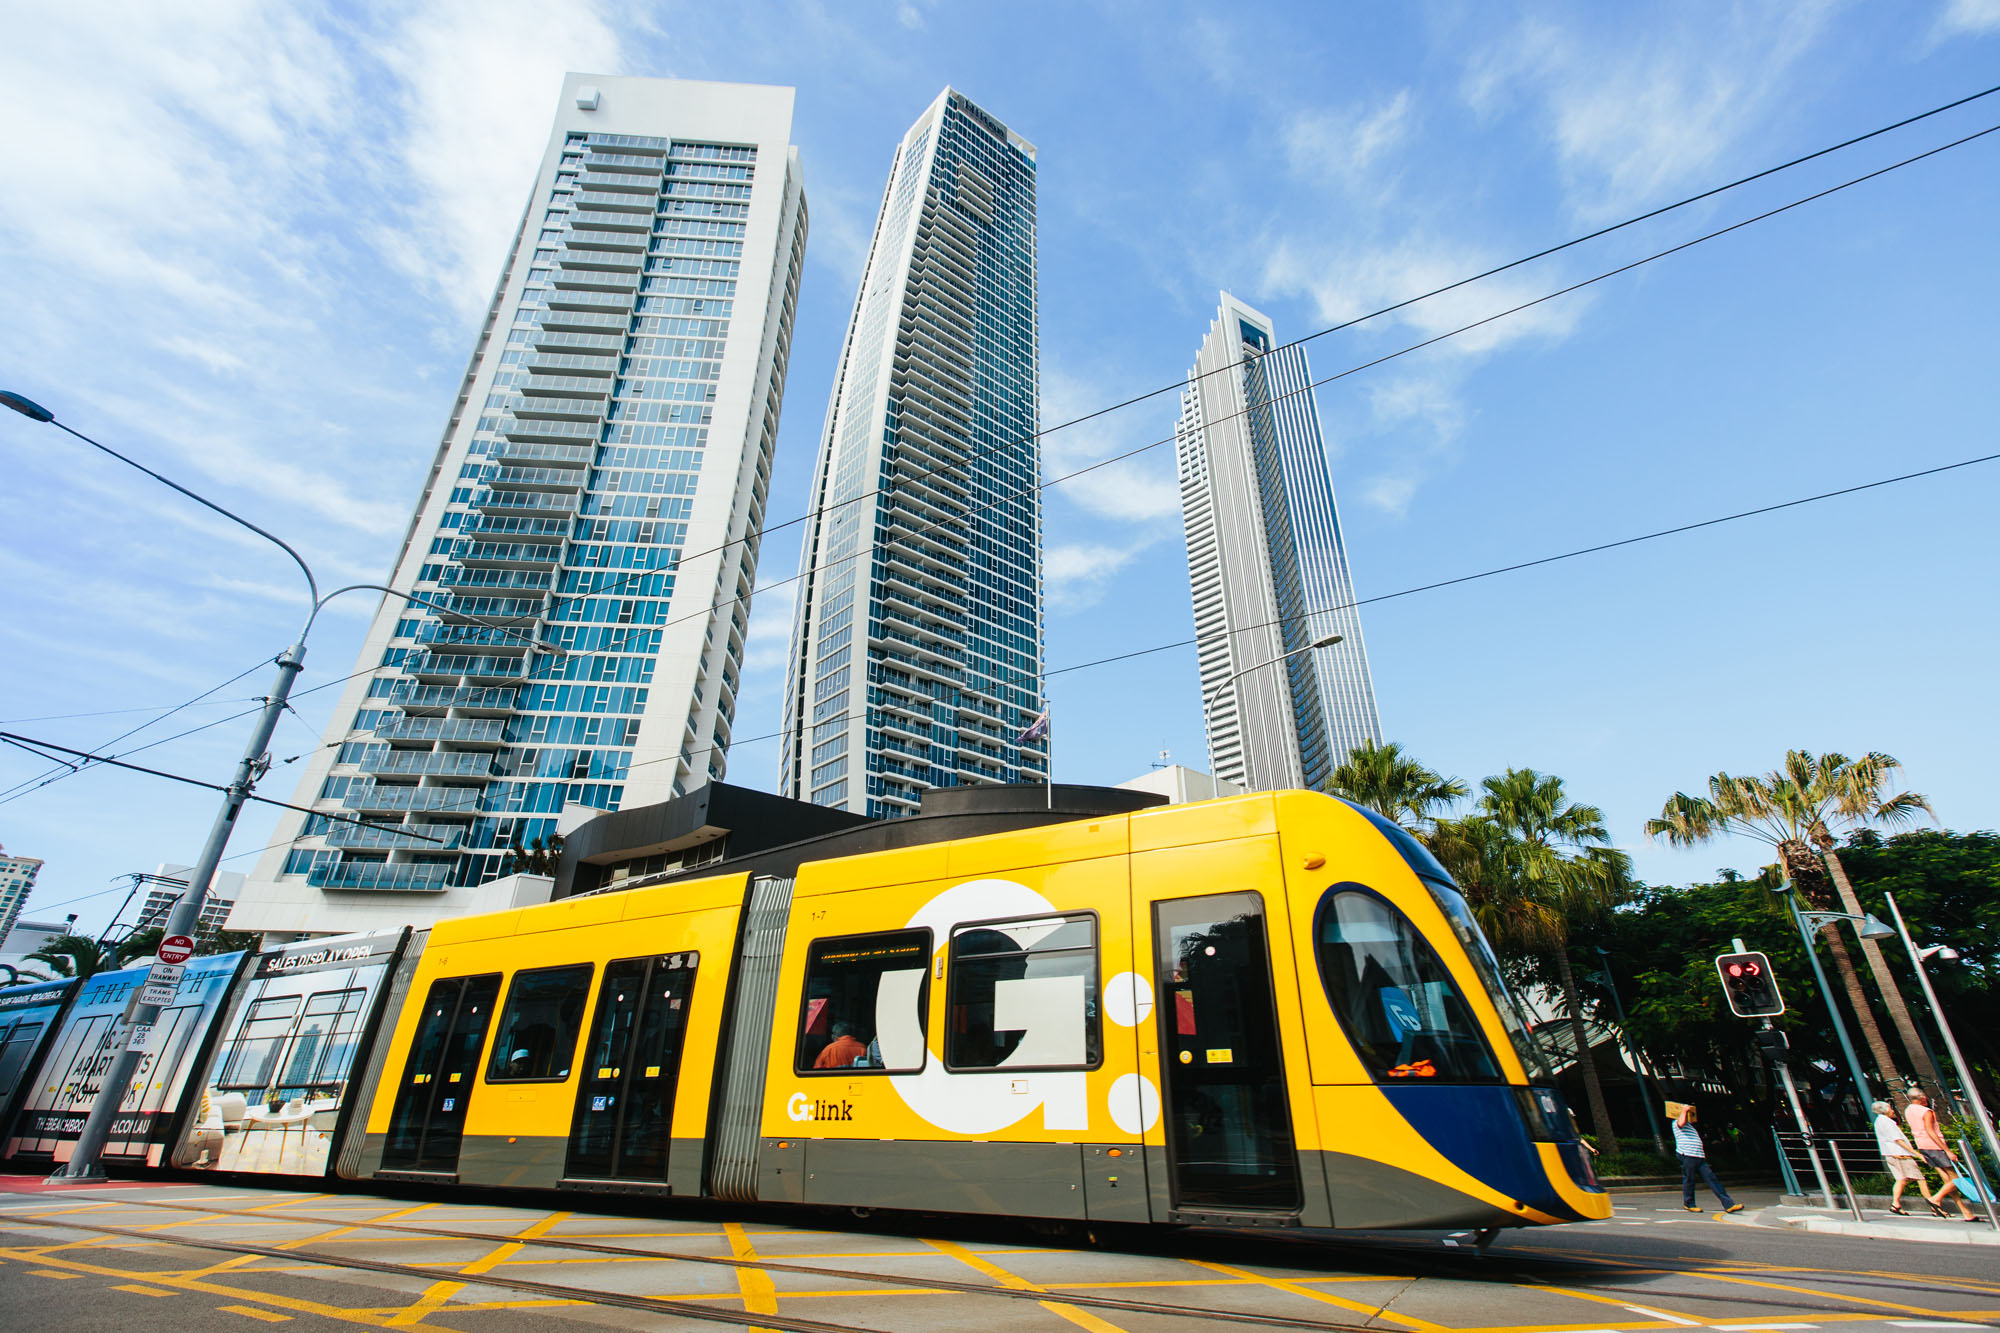 Transport_Tram in Surfers.jpg